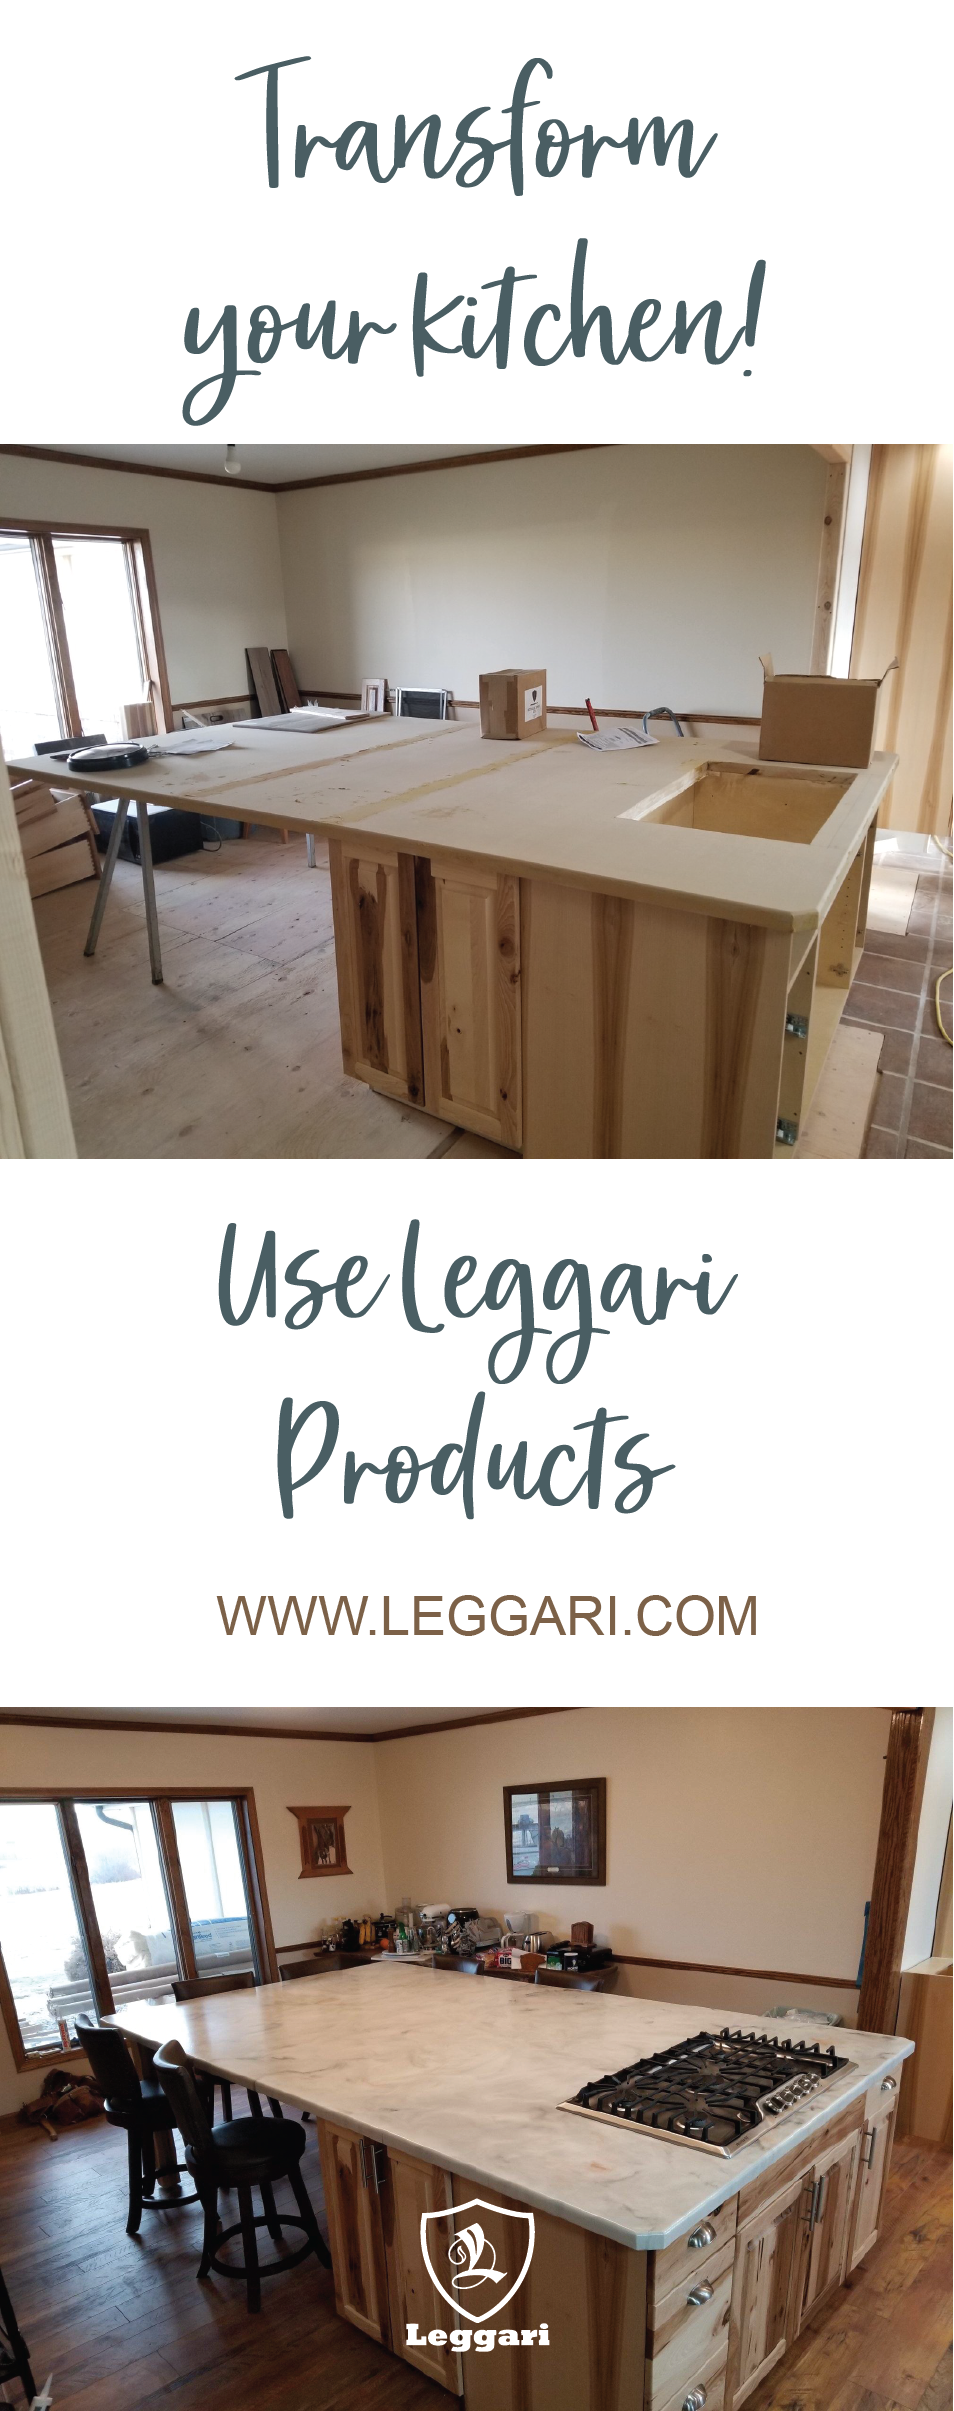 Transform your kitchen today! Use Leggari products to coat